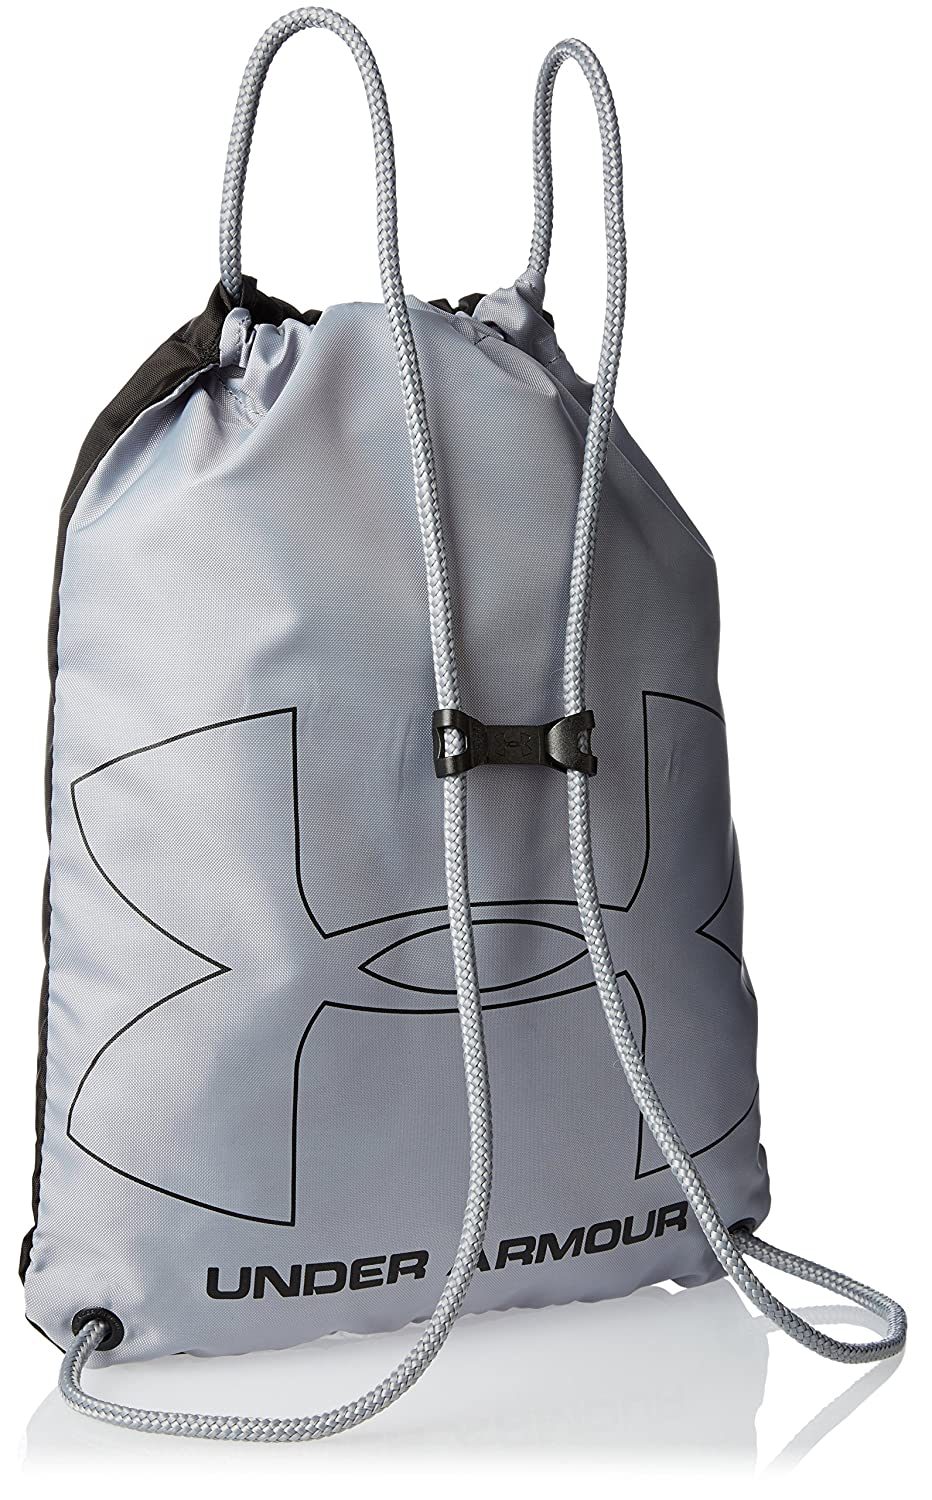 Under Armour Drawstring Bag Amazon Bags More